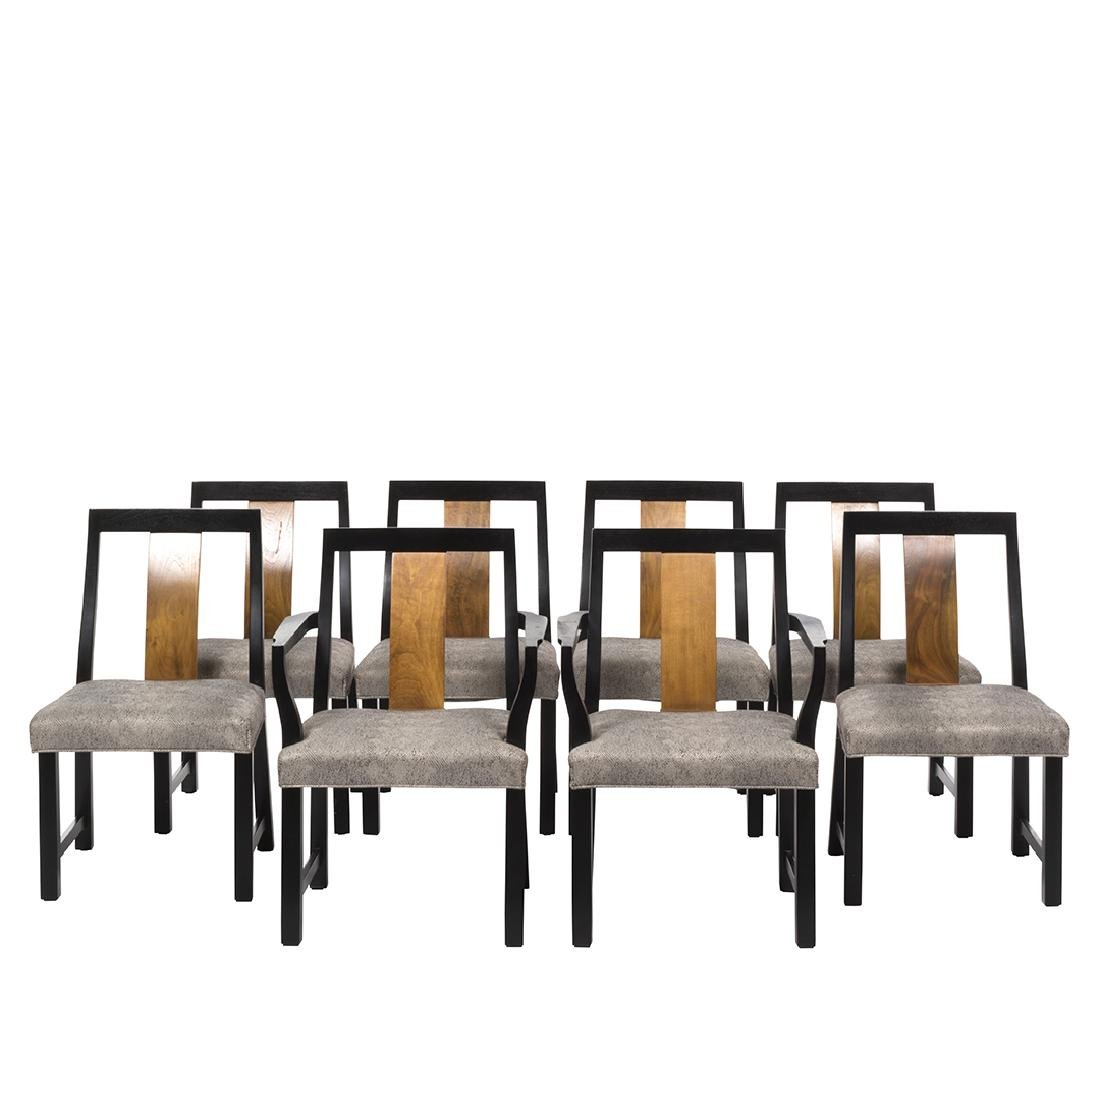 Edward Wormley Dining Chairs (8)